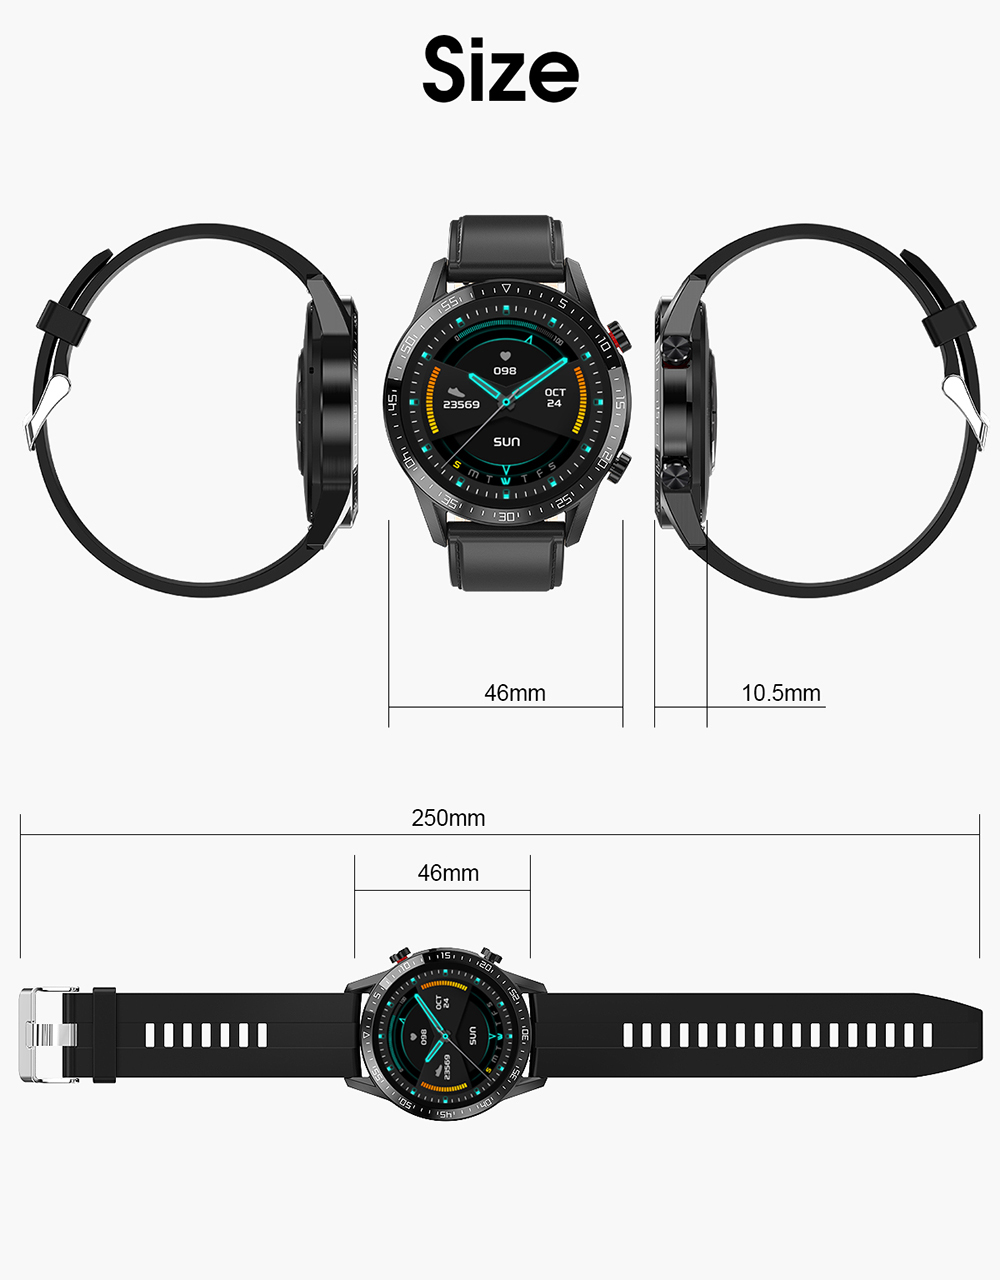 H4bfdd49cc39b40478eaccd50272b115am Reloj Inteligente Hombre Smart Watch Men 2020 Android IP68 Smartwatch Answer Call Smart Watch Man For Huawei Android Apple Phone